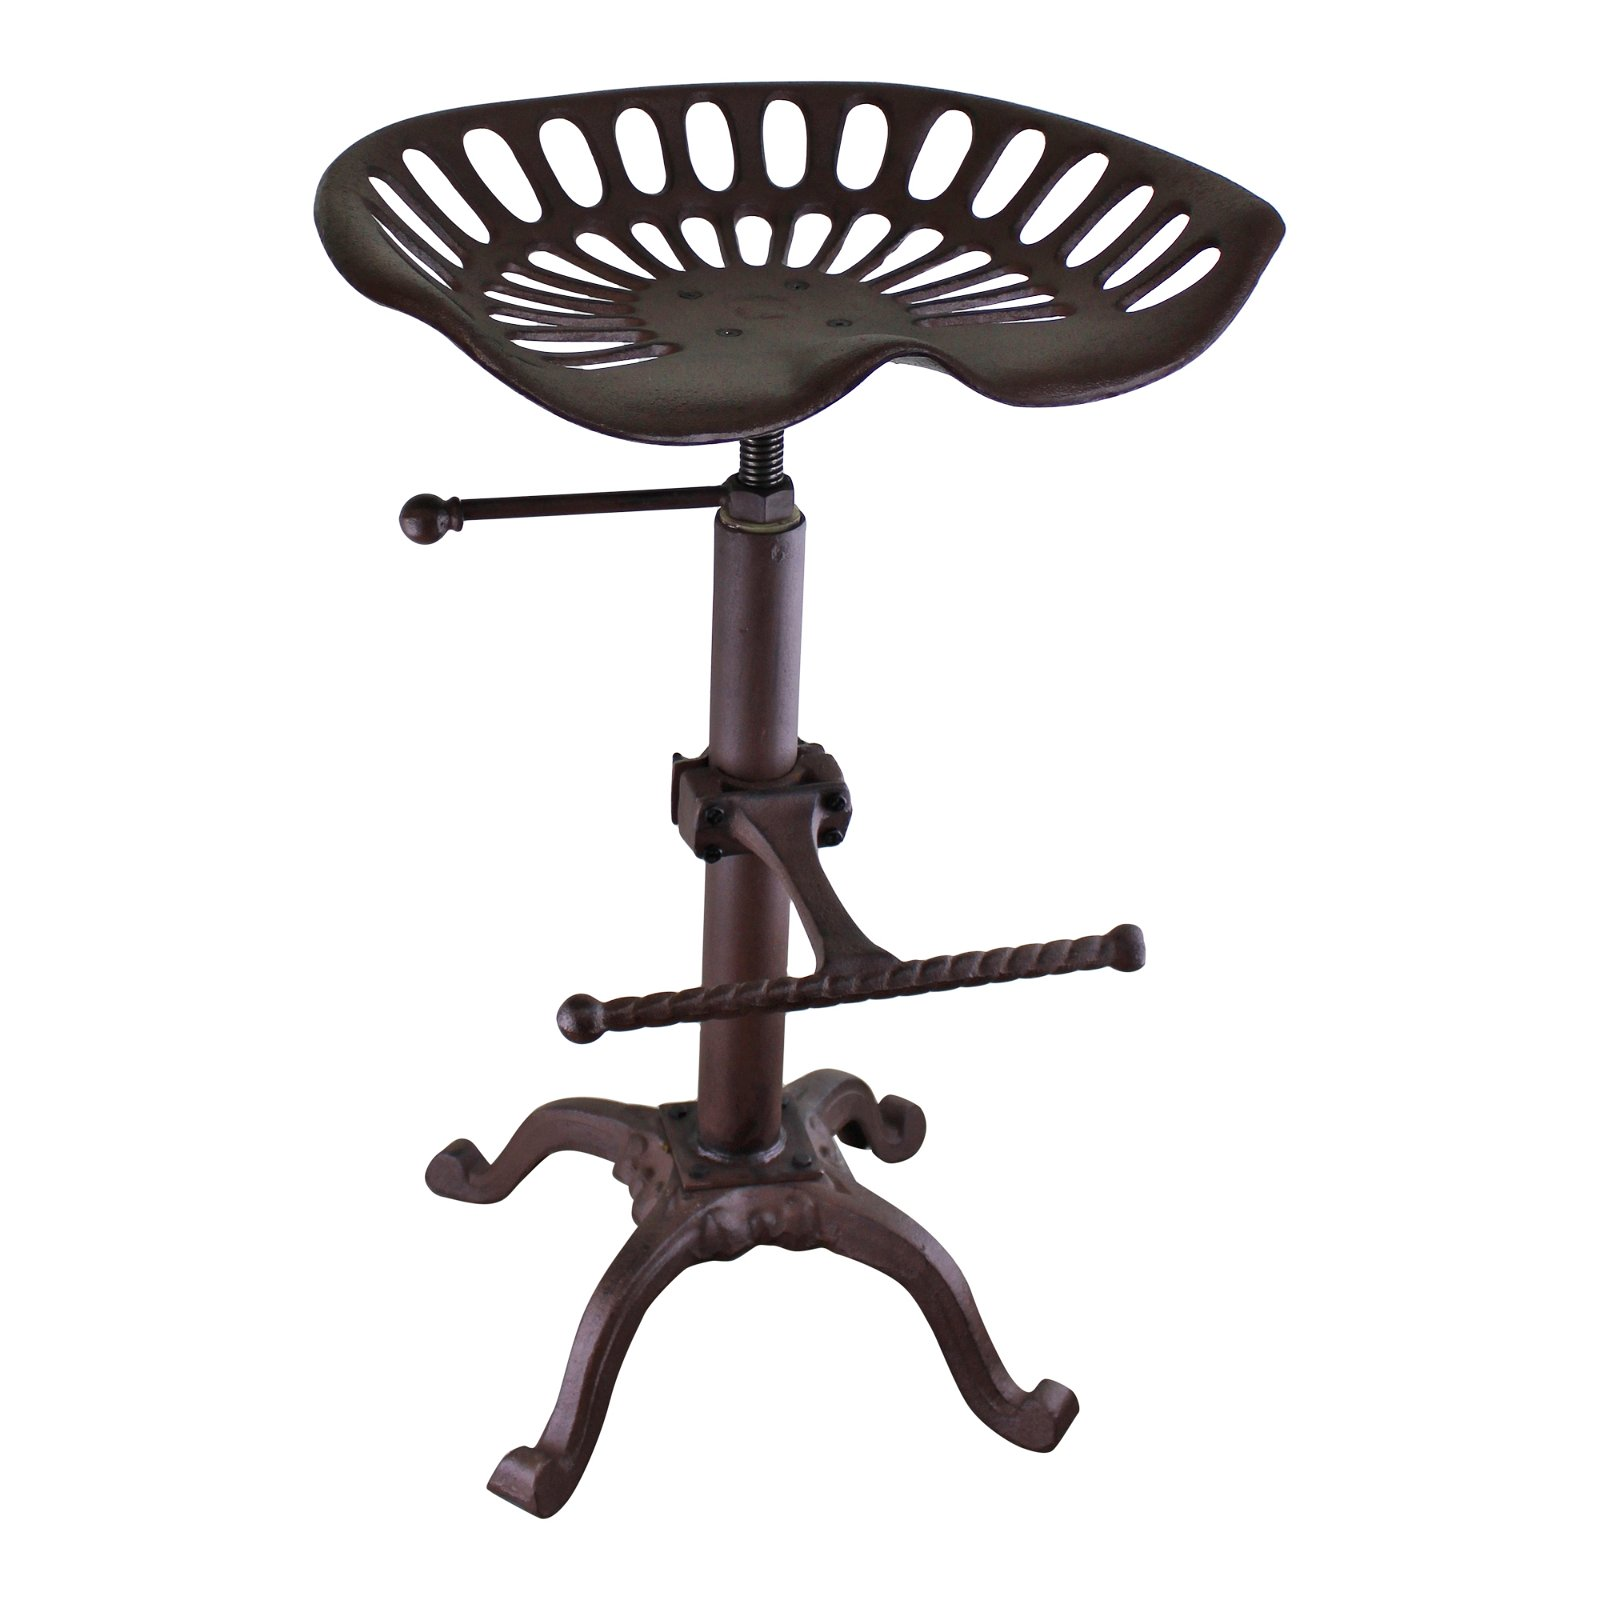 Cast Iron Tractor Seat Kitchen/Bar Stool